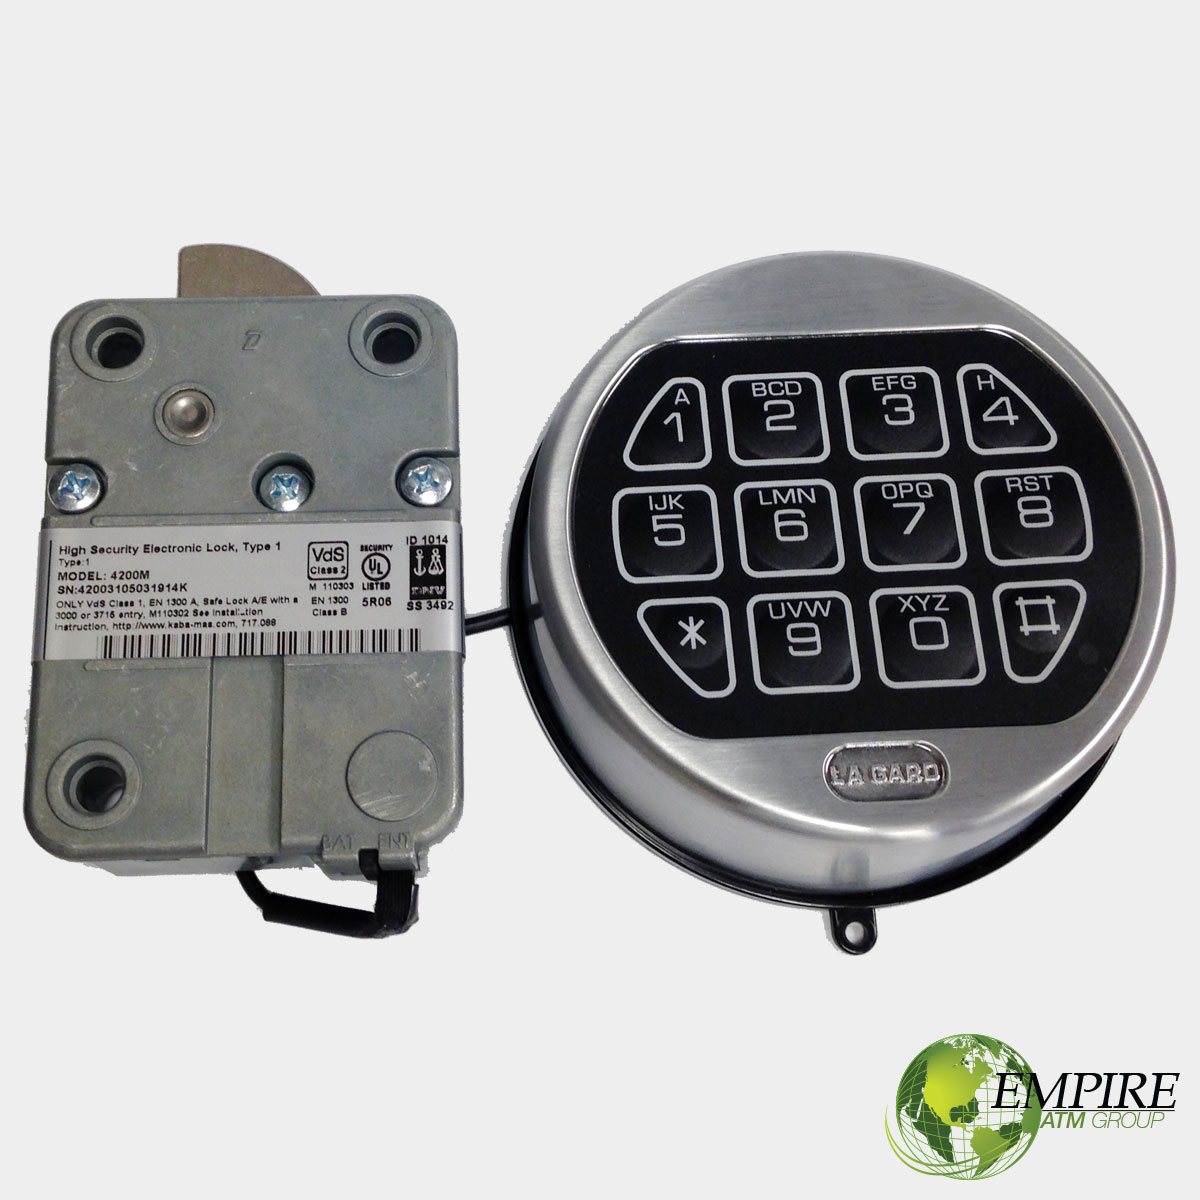 Electronic Pad Locks : Replacement electronic lock empire atm group